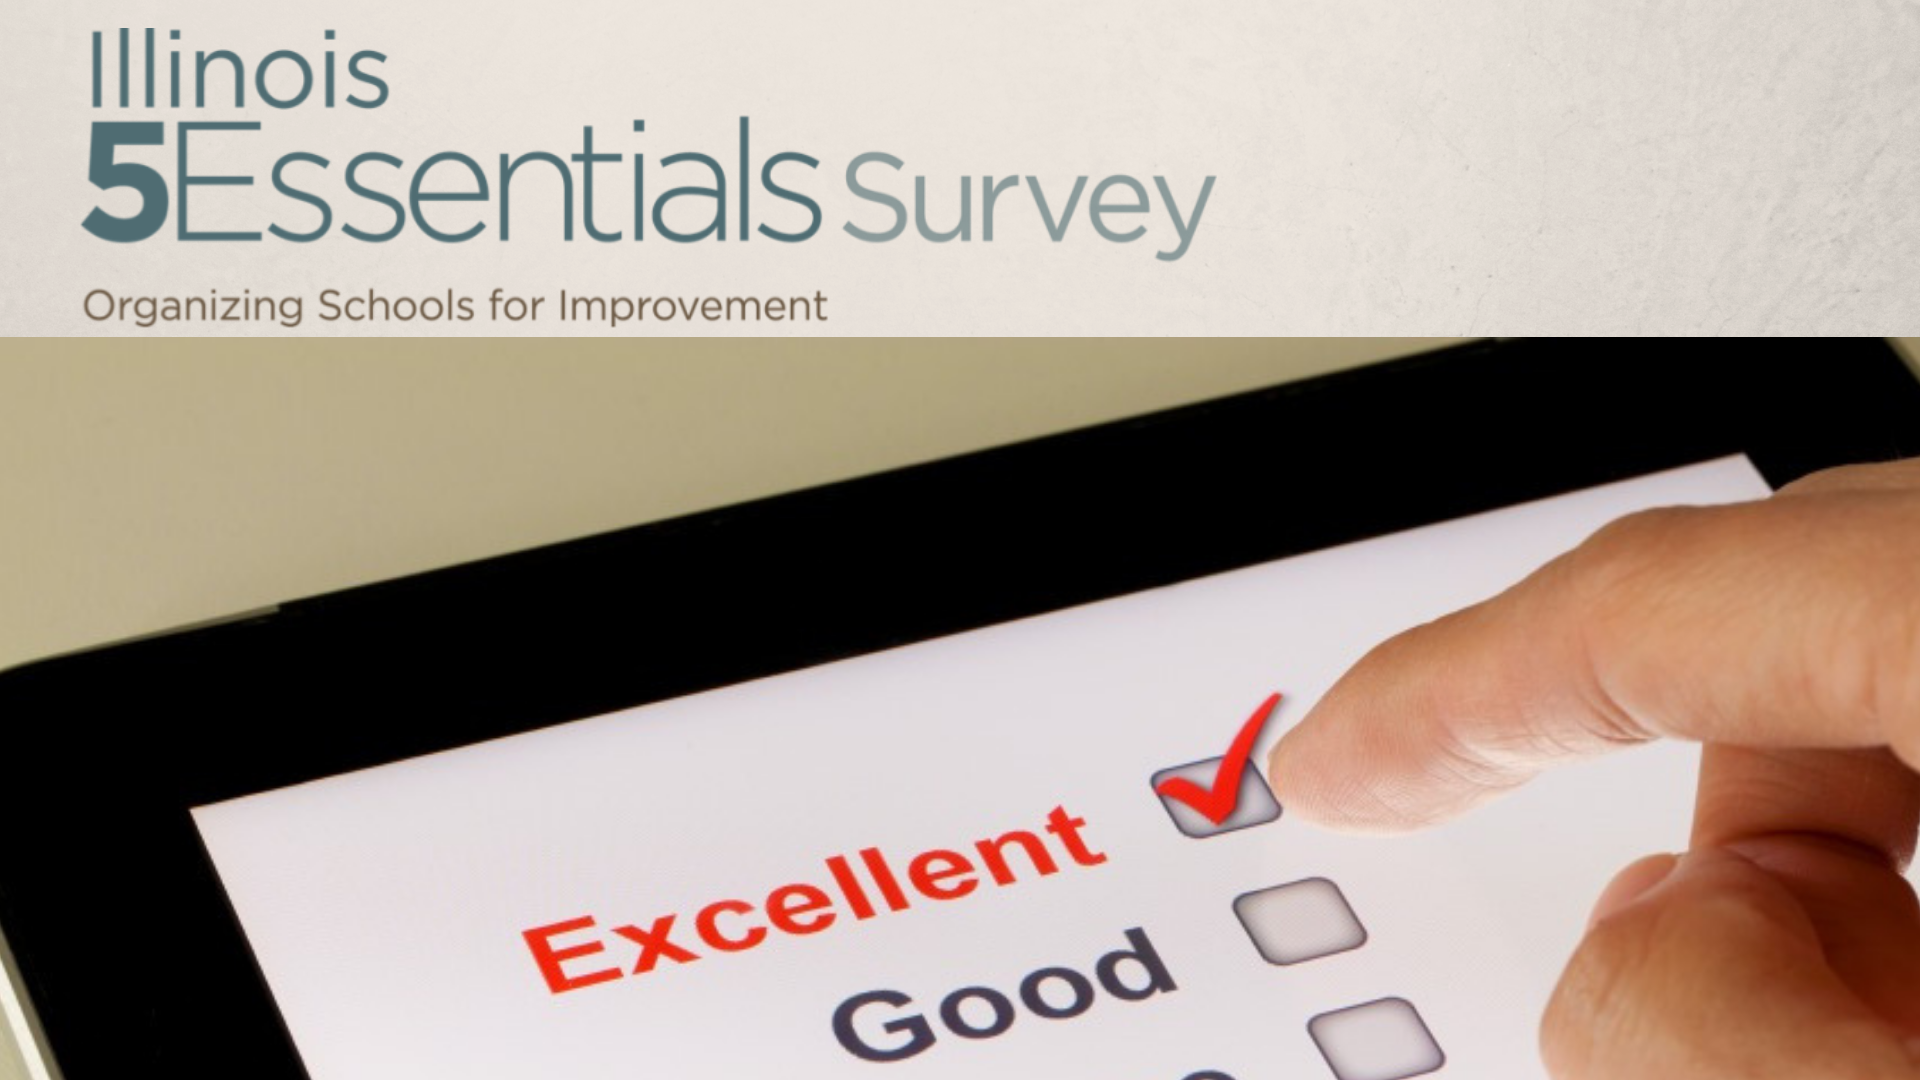 Please complete the 5 Essentials Survey Online